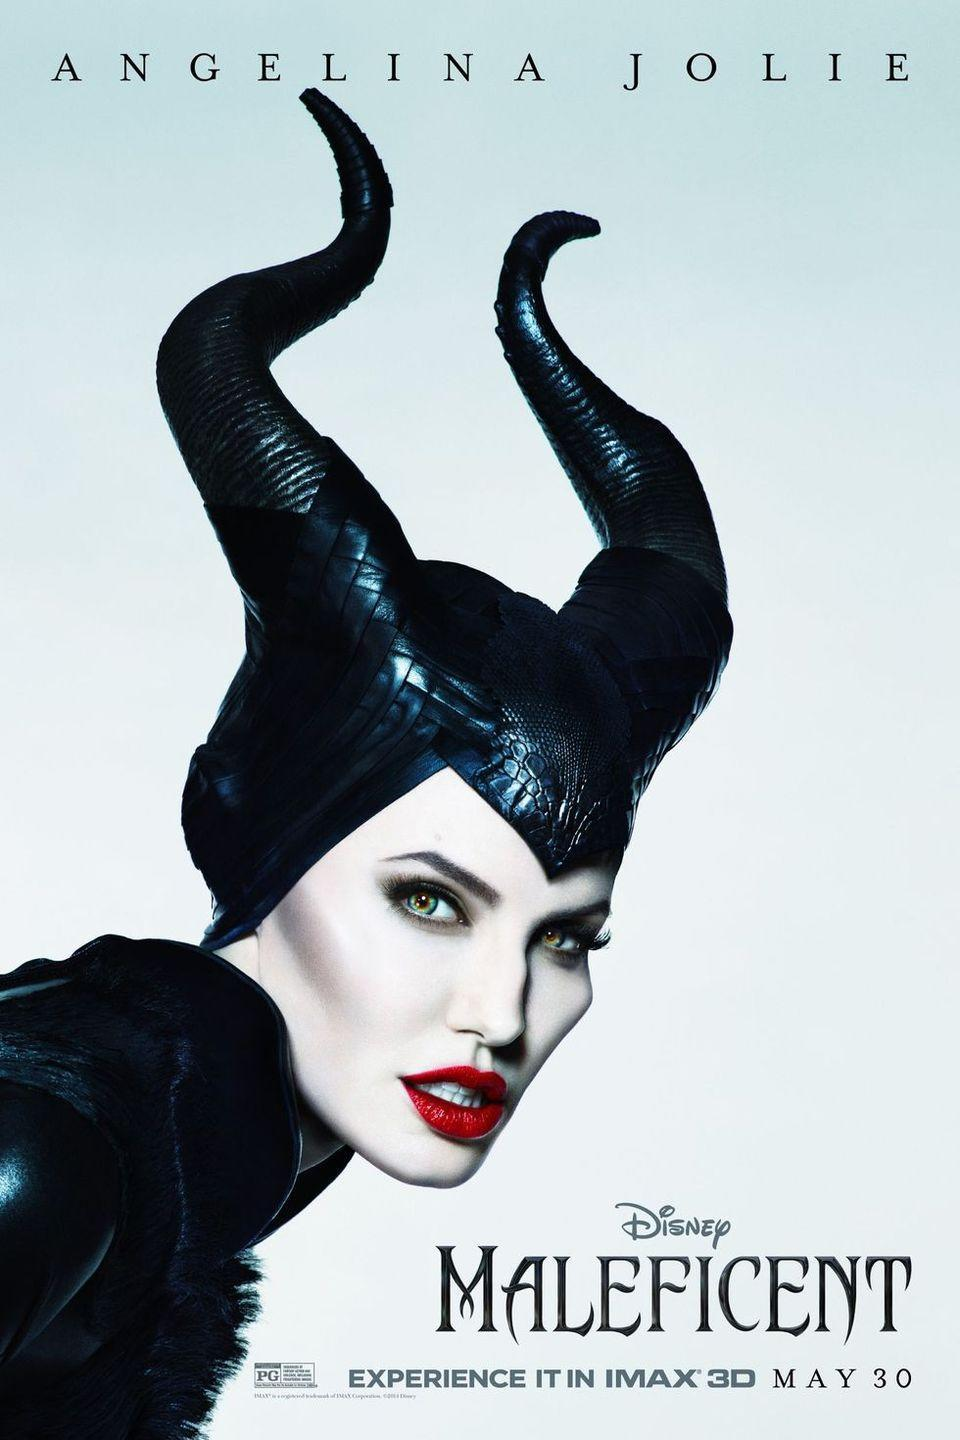 """<p>Based on the evil character in <em>Sleeping Beauty,</em> Maleficent (<strong>Angelina Jolie</strong>) takes center stage as the protector of a forest kingdom. When she tries to curse an infant princess, she discovers that the princess may be the one who can restore her land. The result is a complicated relationship that will make you think twice about one of Disney's most iconic villains.</p><p><a class=""""link rapid-noclick-resp"""" href=""""https://go.redirectingat.com?id=74968X1596630&url=https%3A%2F%2Fwww.disneyplus.com%2Fmovies%2Fmaleficent%2F1QAyjfzQe6OK&sref=https%3A%2F%2Fwww.goodhousekeeping.com%2Flife%2Fentertainment%2Fg33651563%2Fdisney-halloween-movies%2F"""" rel=""""nofollow noopener"""" target=""""_blank"""" data-ylk=""""slk:WATCH NOW"""">WATCH NOW</a></p>"""